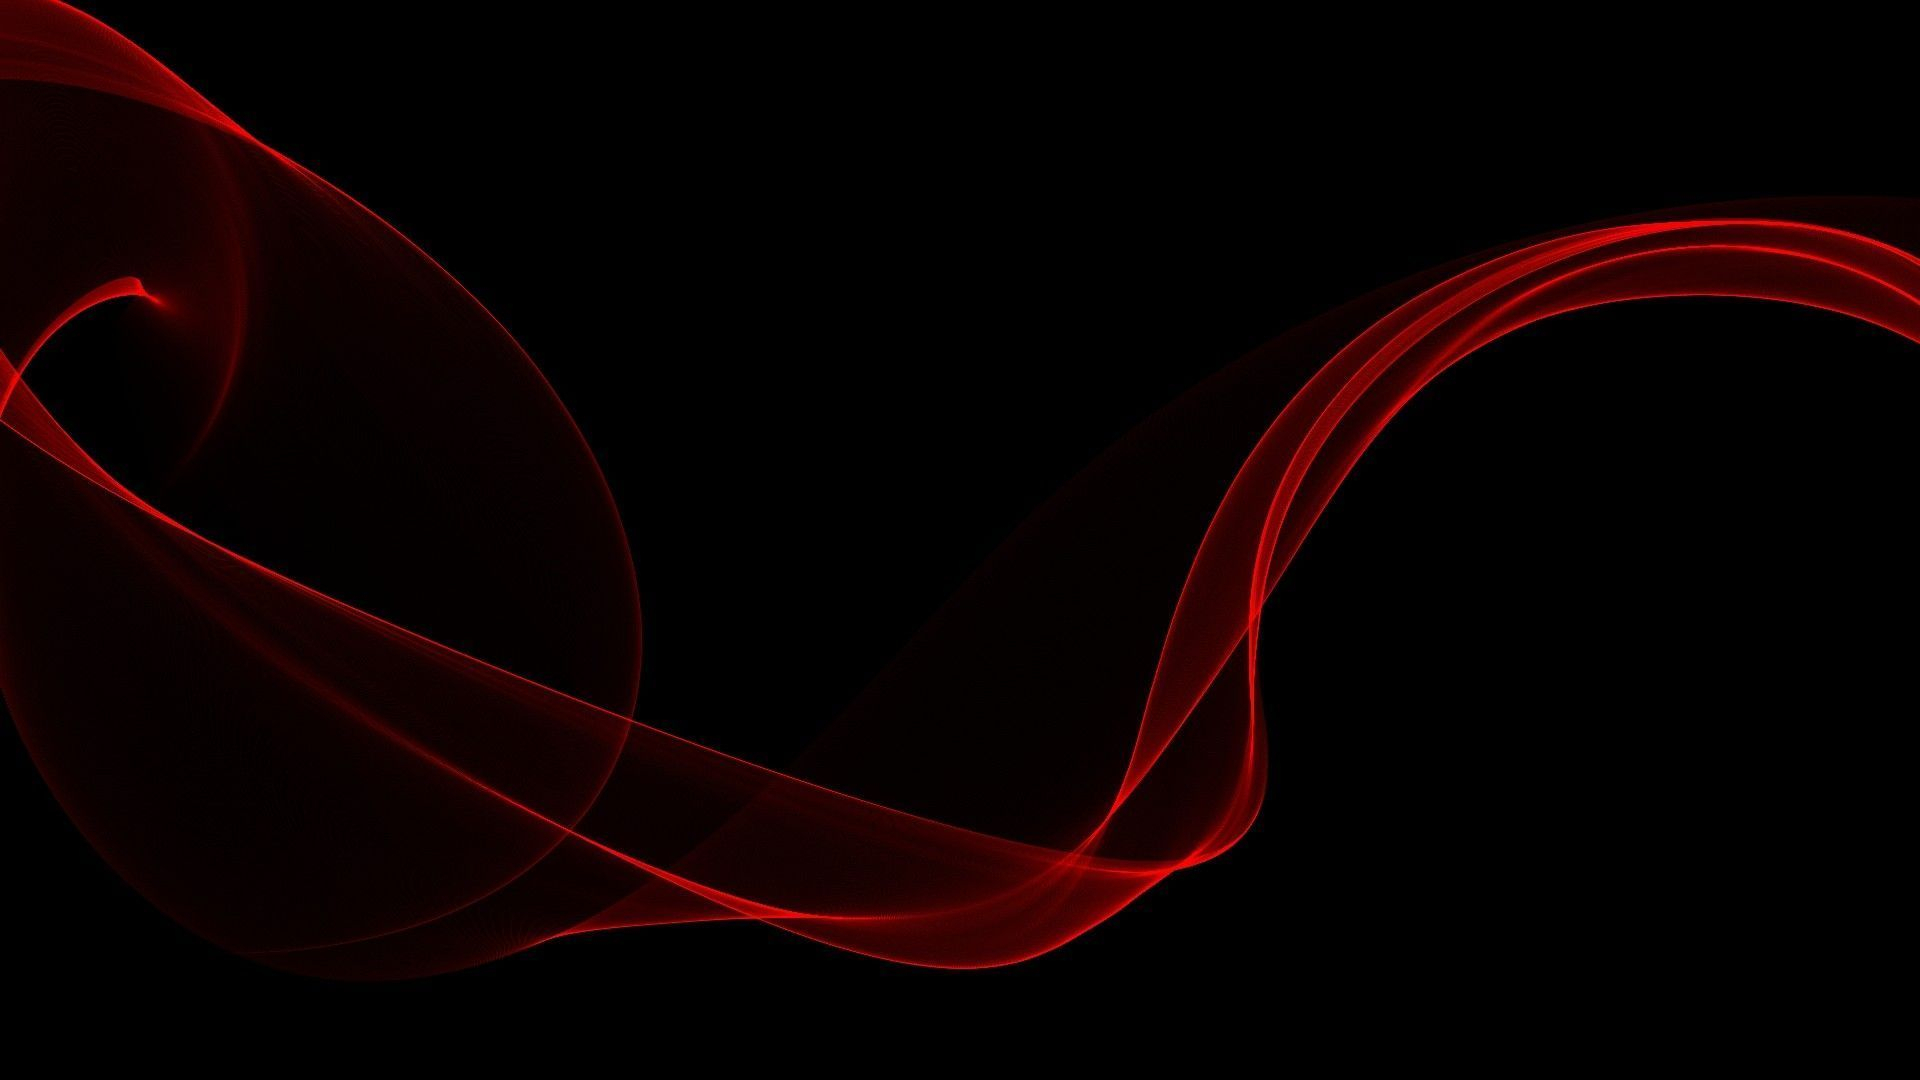 black and red wallpapers hd wallpaper 1600×1200 black and red